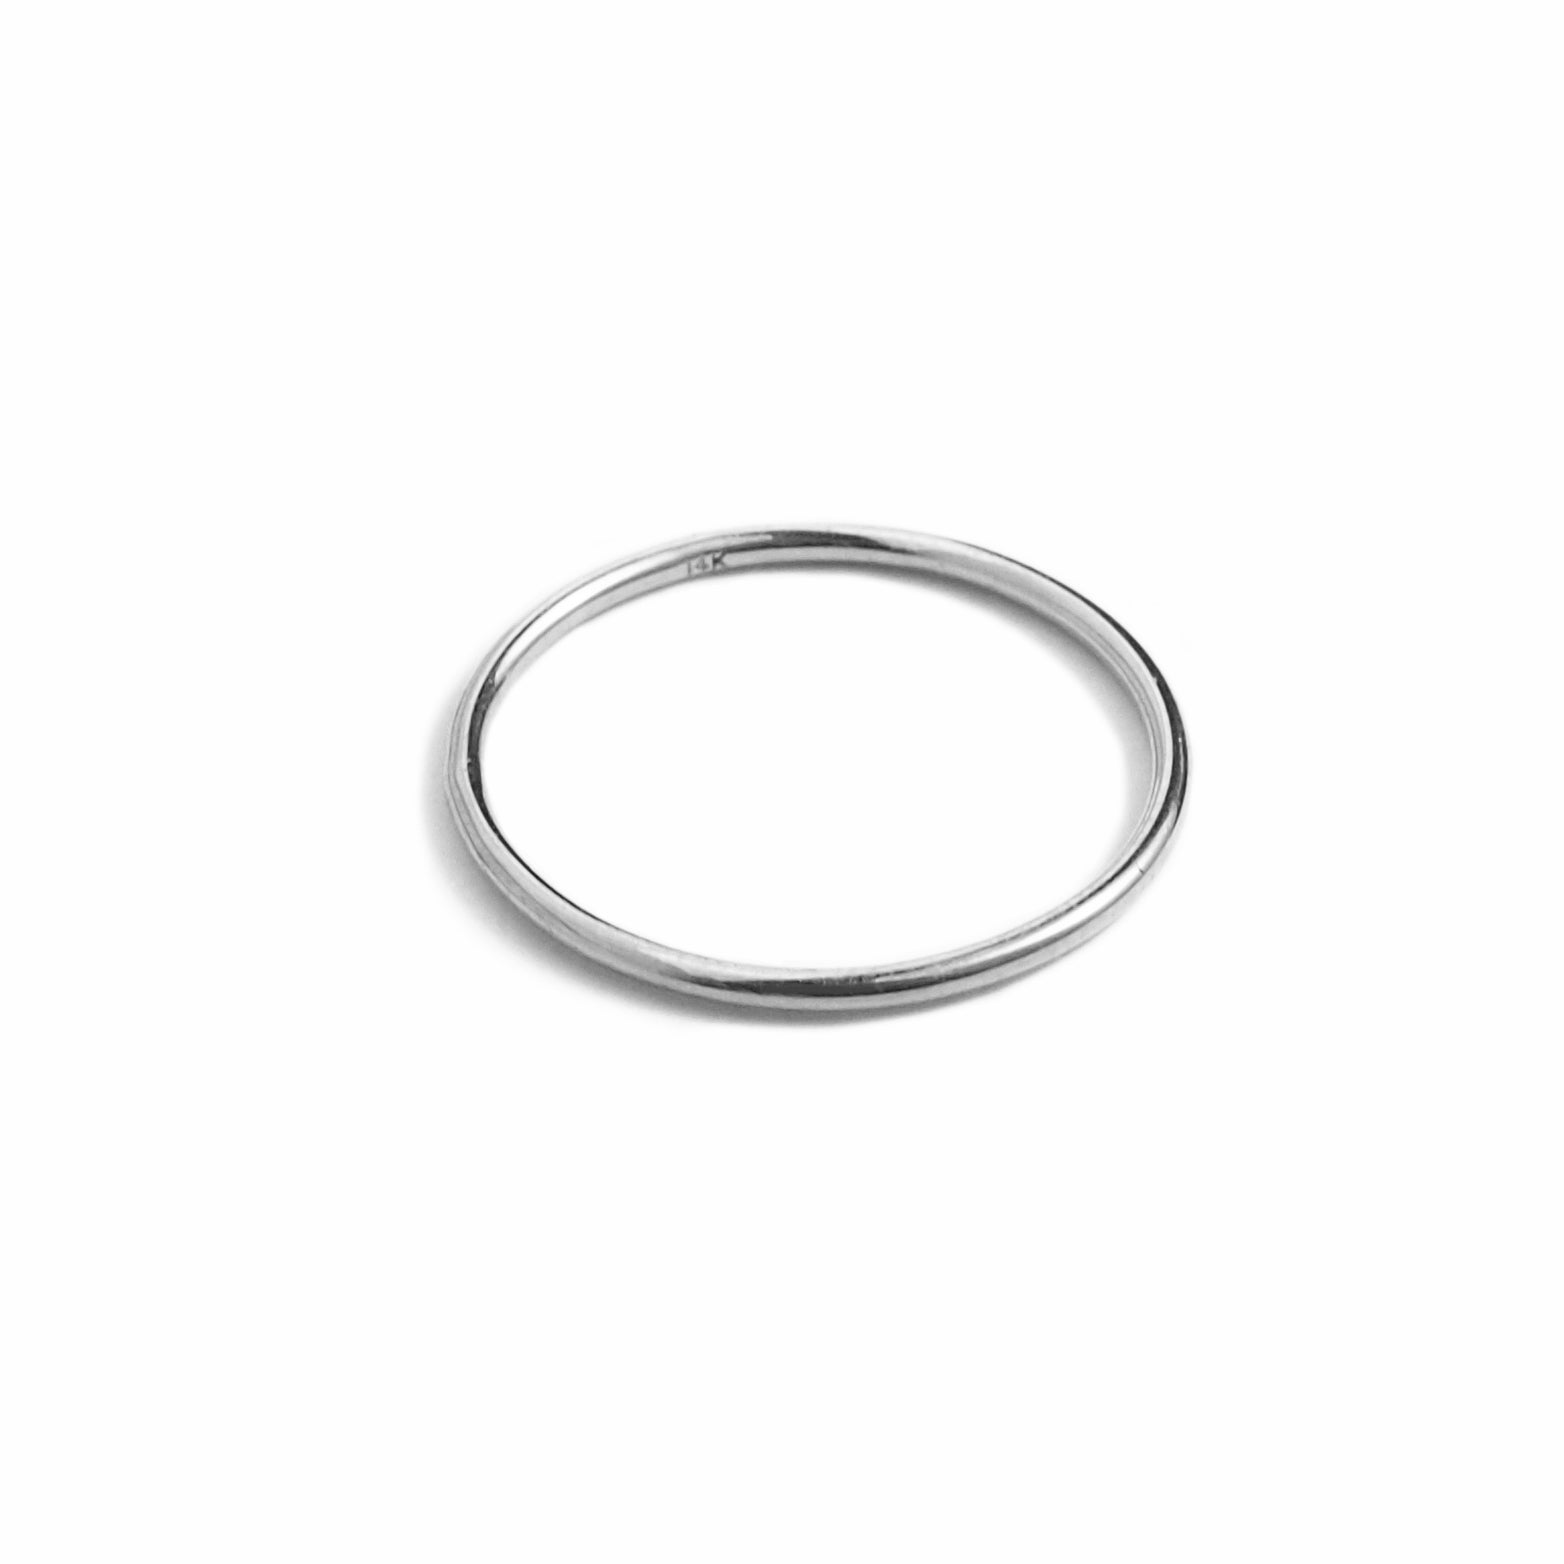 for listing ringgold ring ringthin filled thin fullxfull gift gold her rings plain minimalist il stacking